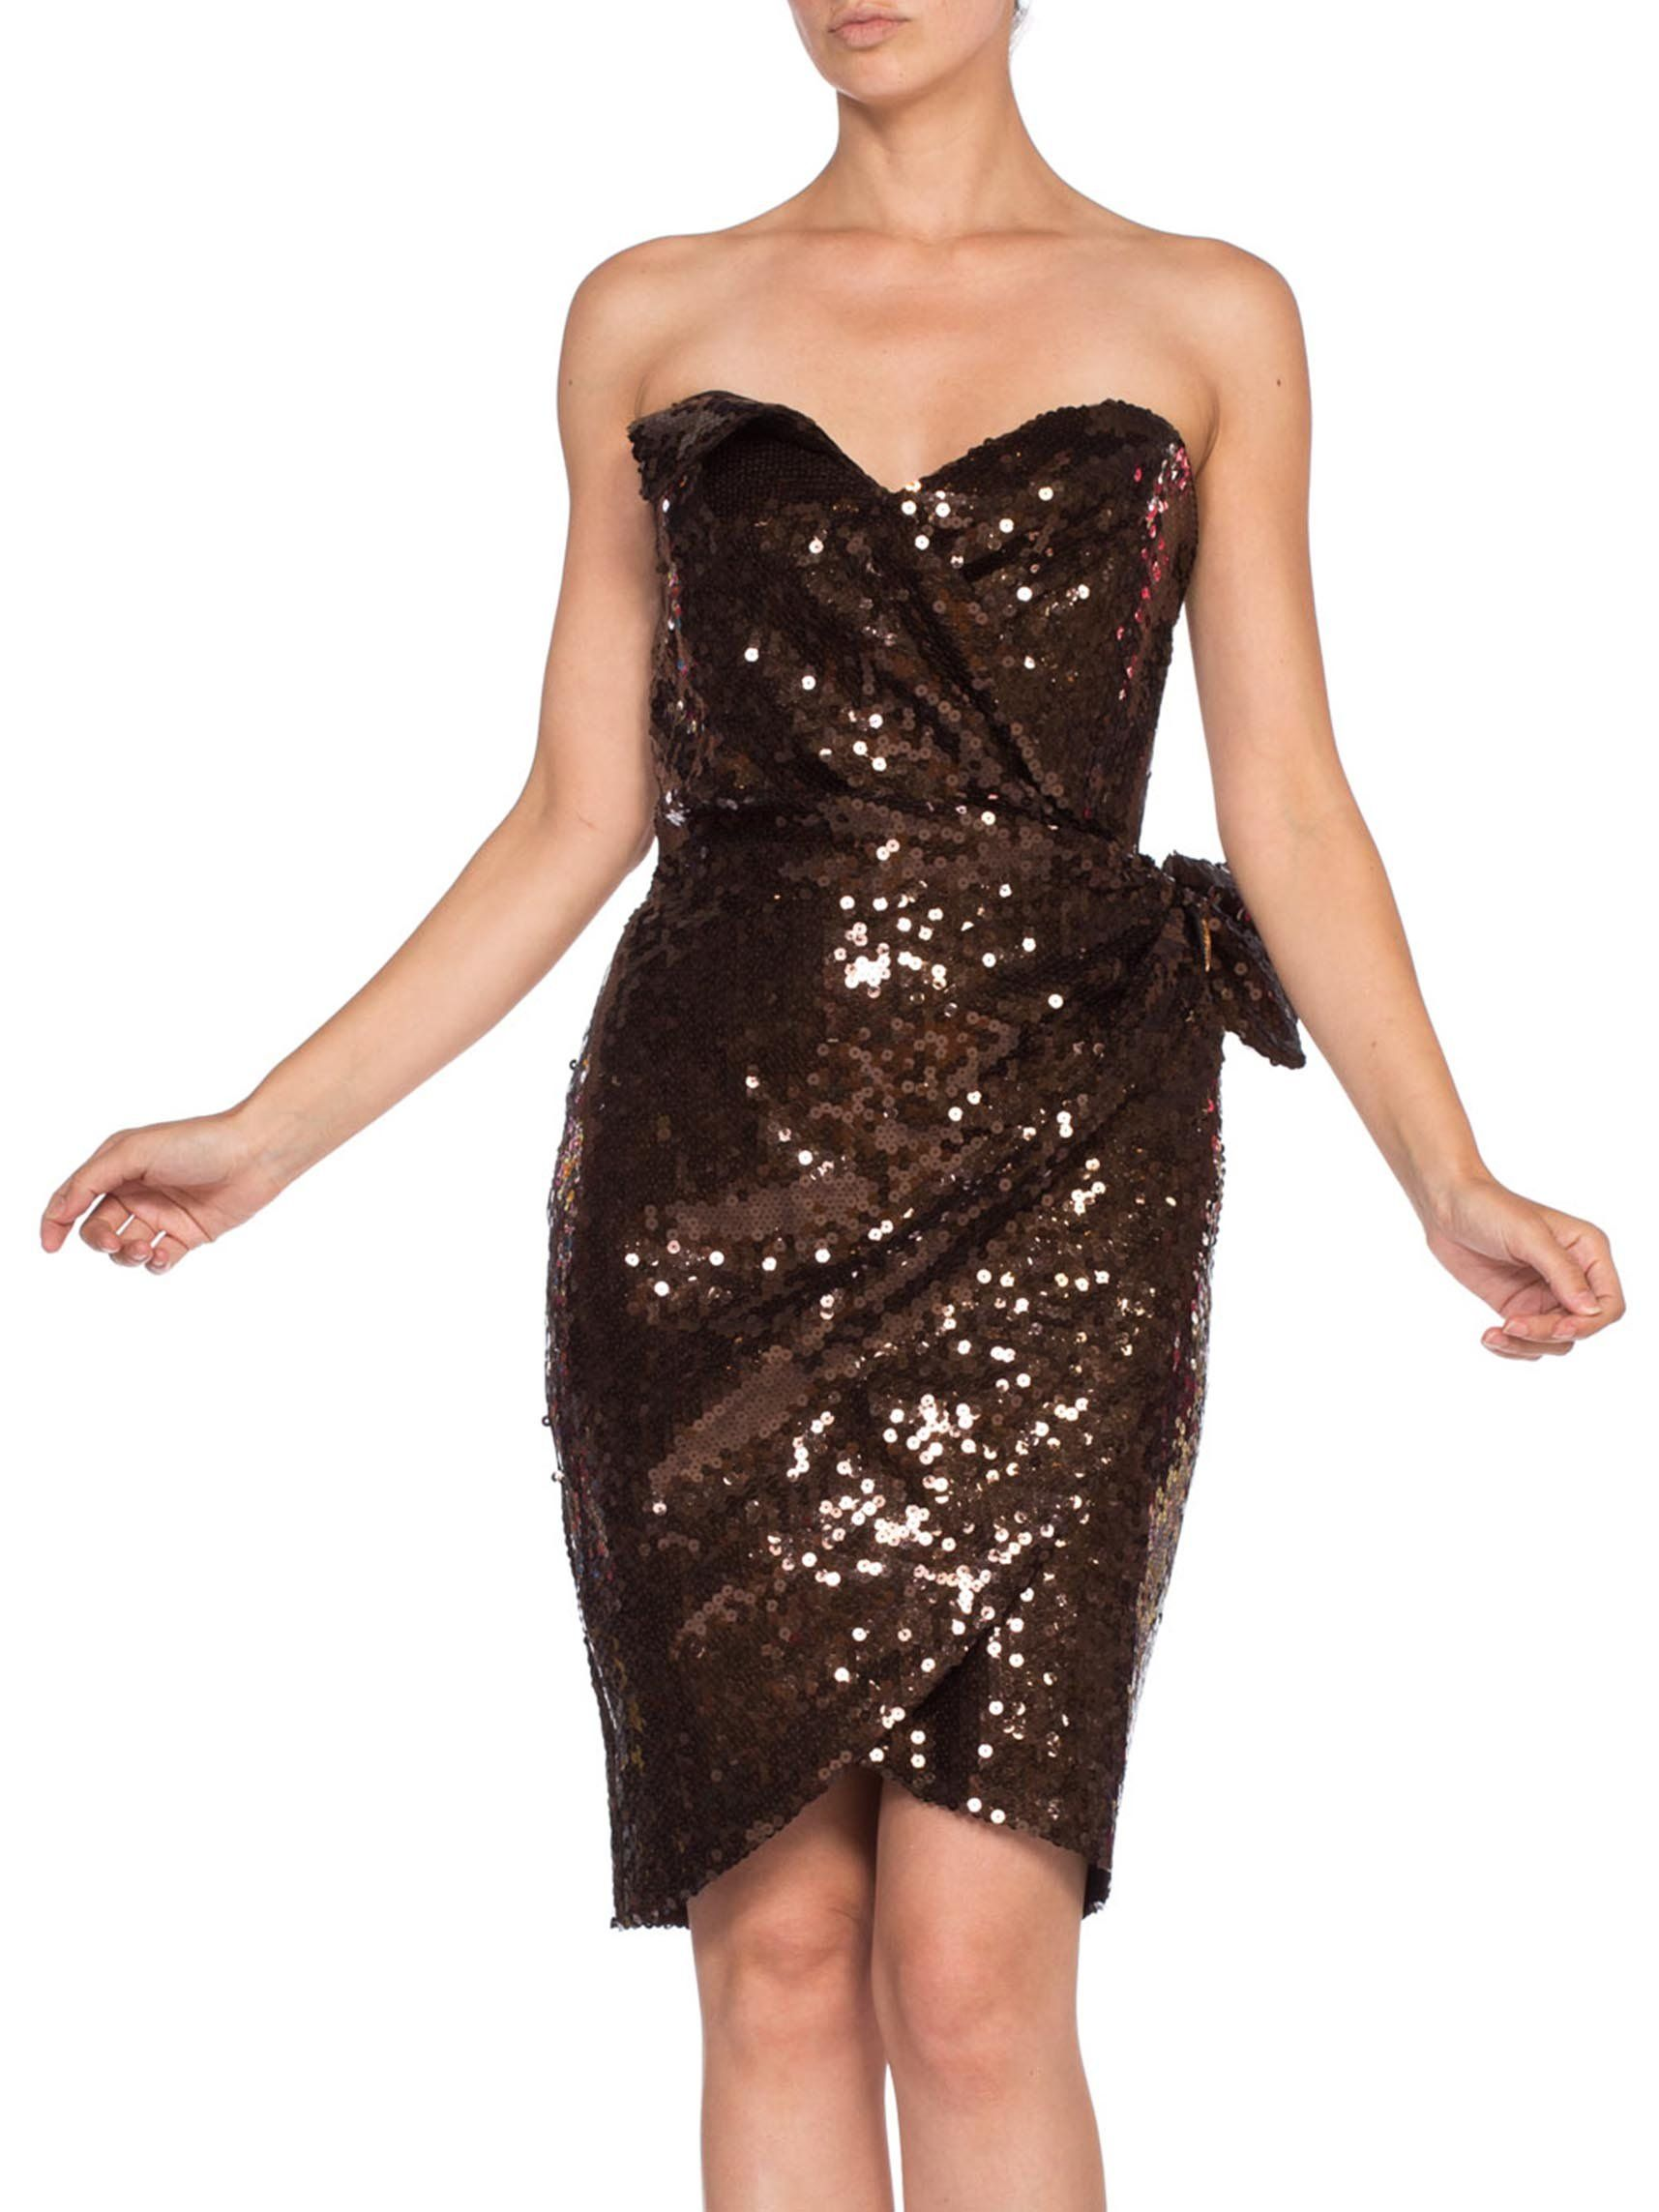 1980s Thierry Mugler Chocolate Brown Rayon Fully Sequined Strapless Cocktail Dress Strapless Cocktail Dresses Cocktail Dress Strapless Dress Formal [ 2287 x 1715 Pixel ]